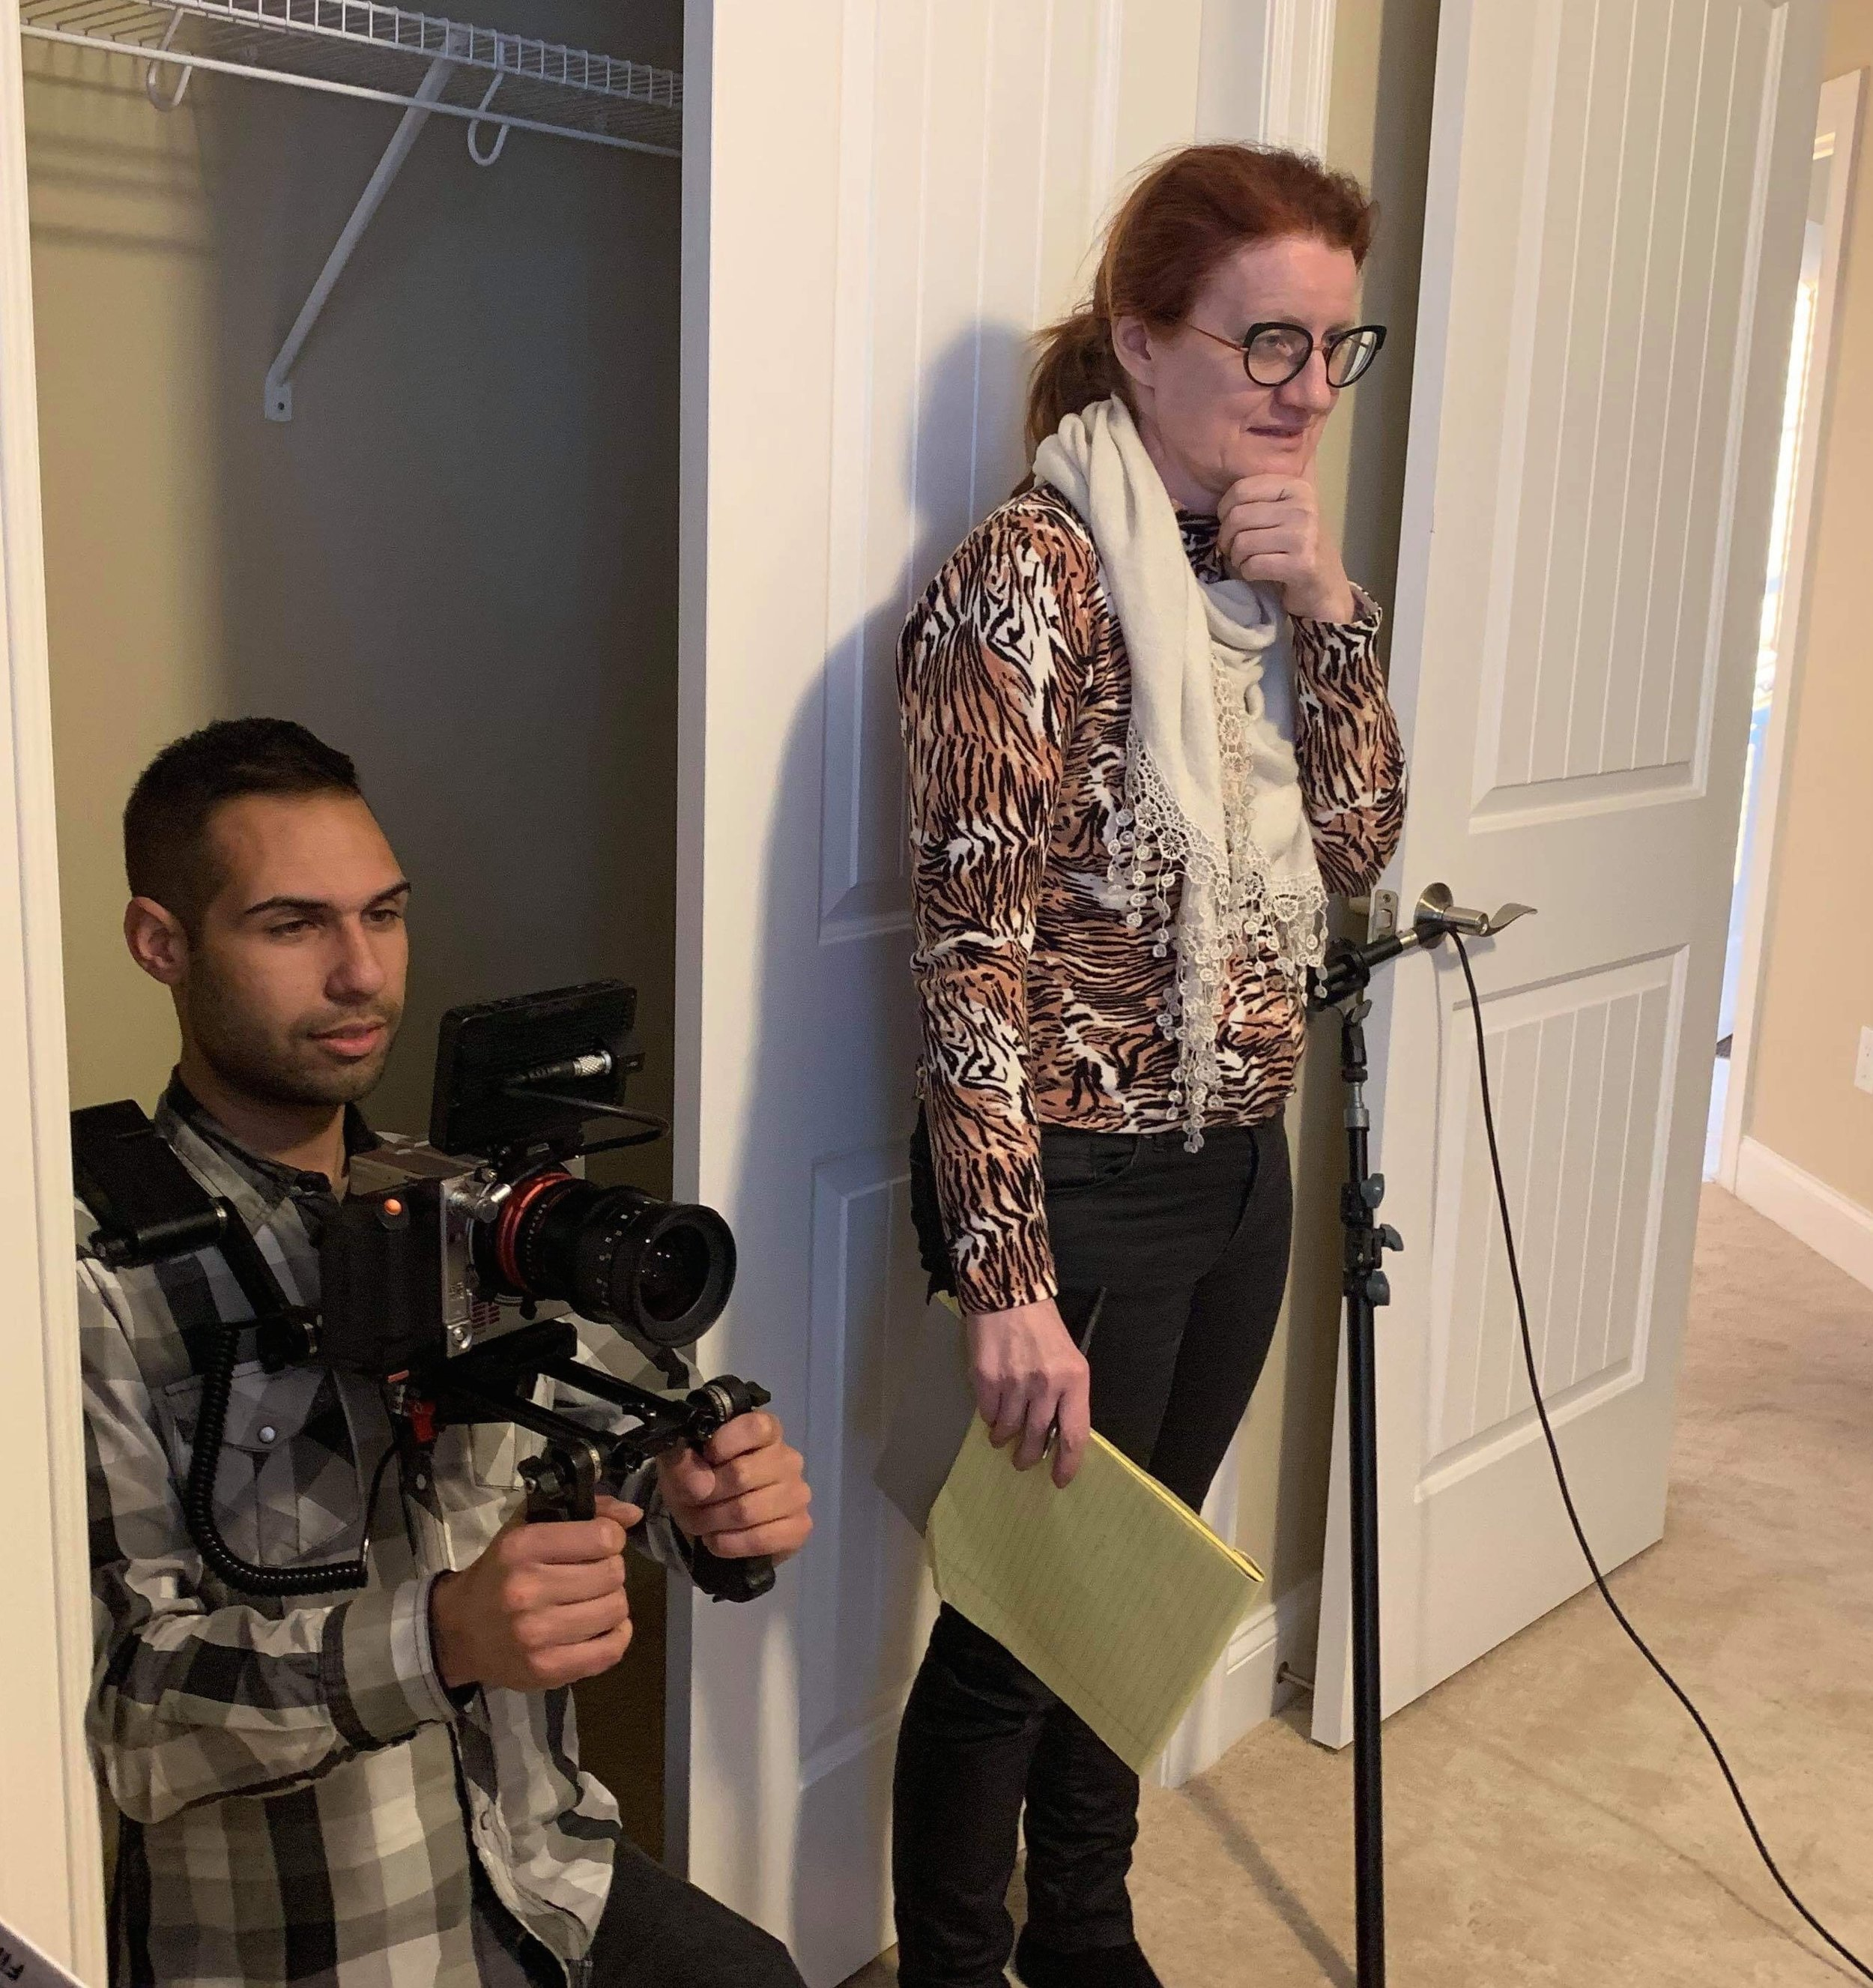 Behind The Scenes with Director Of Photography Ben Chatfield and Sonia Conlin on set for 'These Streets Don't Love You Like I Do"